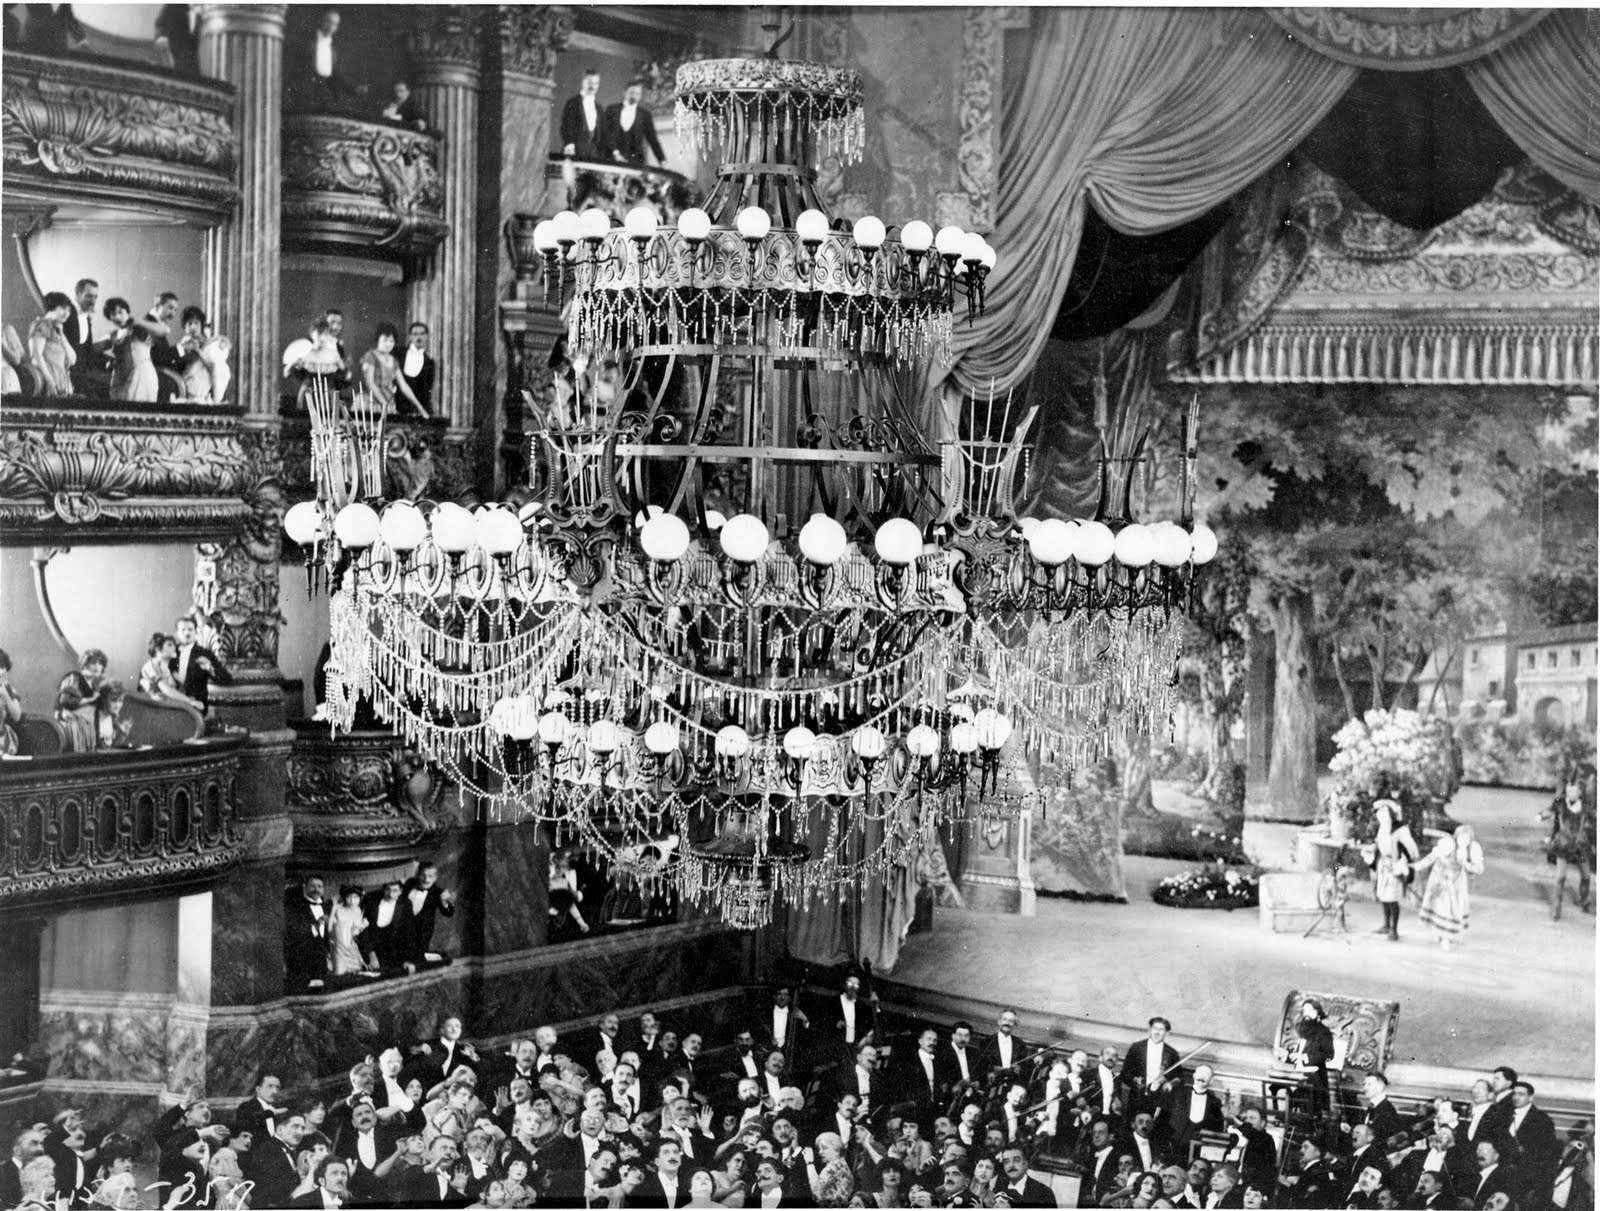 Amazingly The Scene In Which Grand Chandelier Falls On Audience Was A Practical Effect This Achieved By Gently Lowered Onto